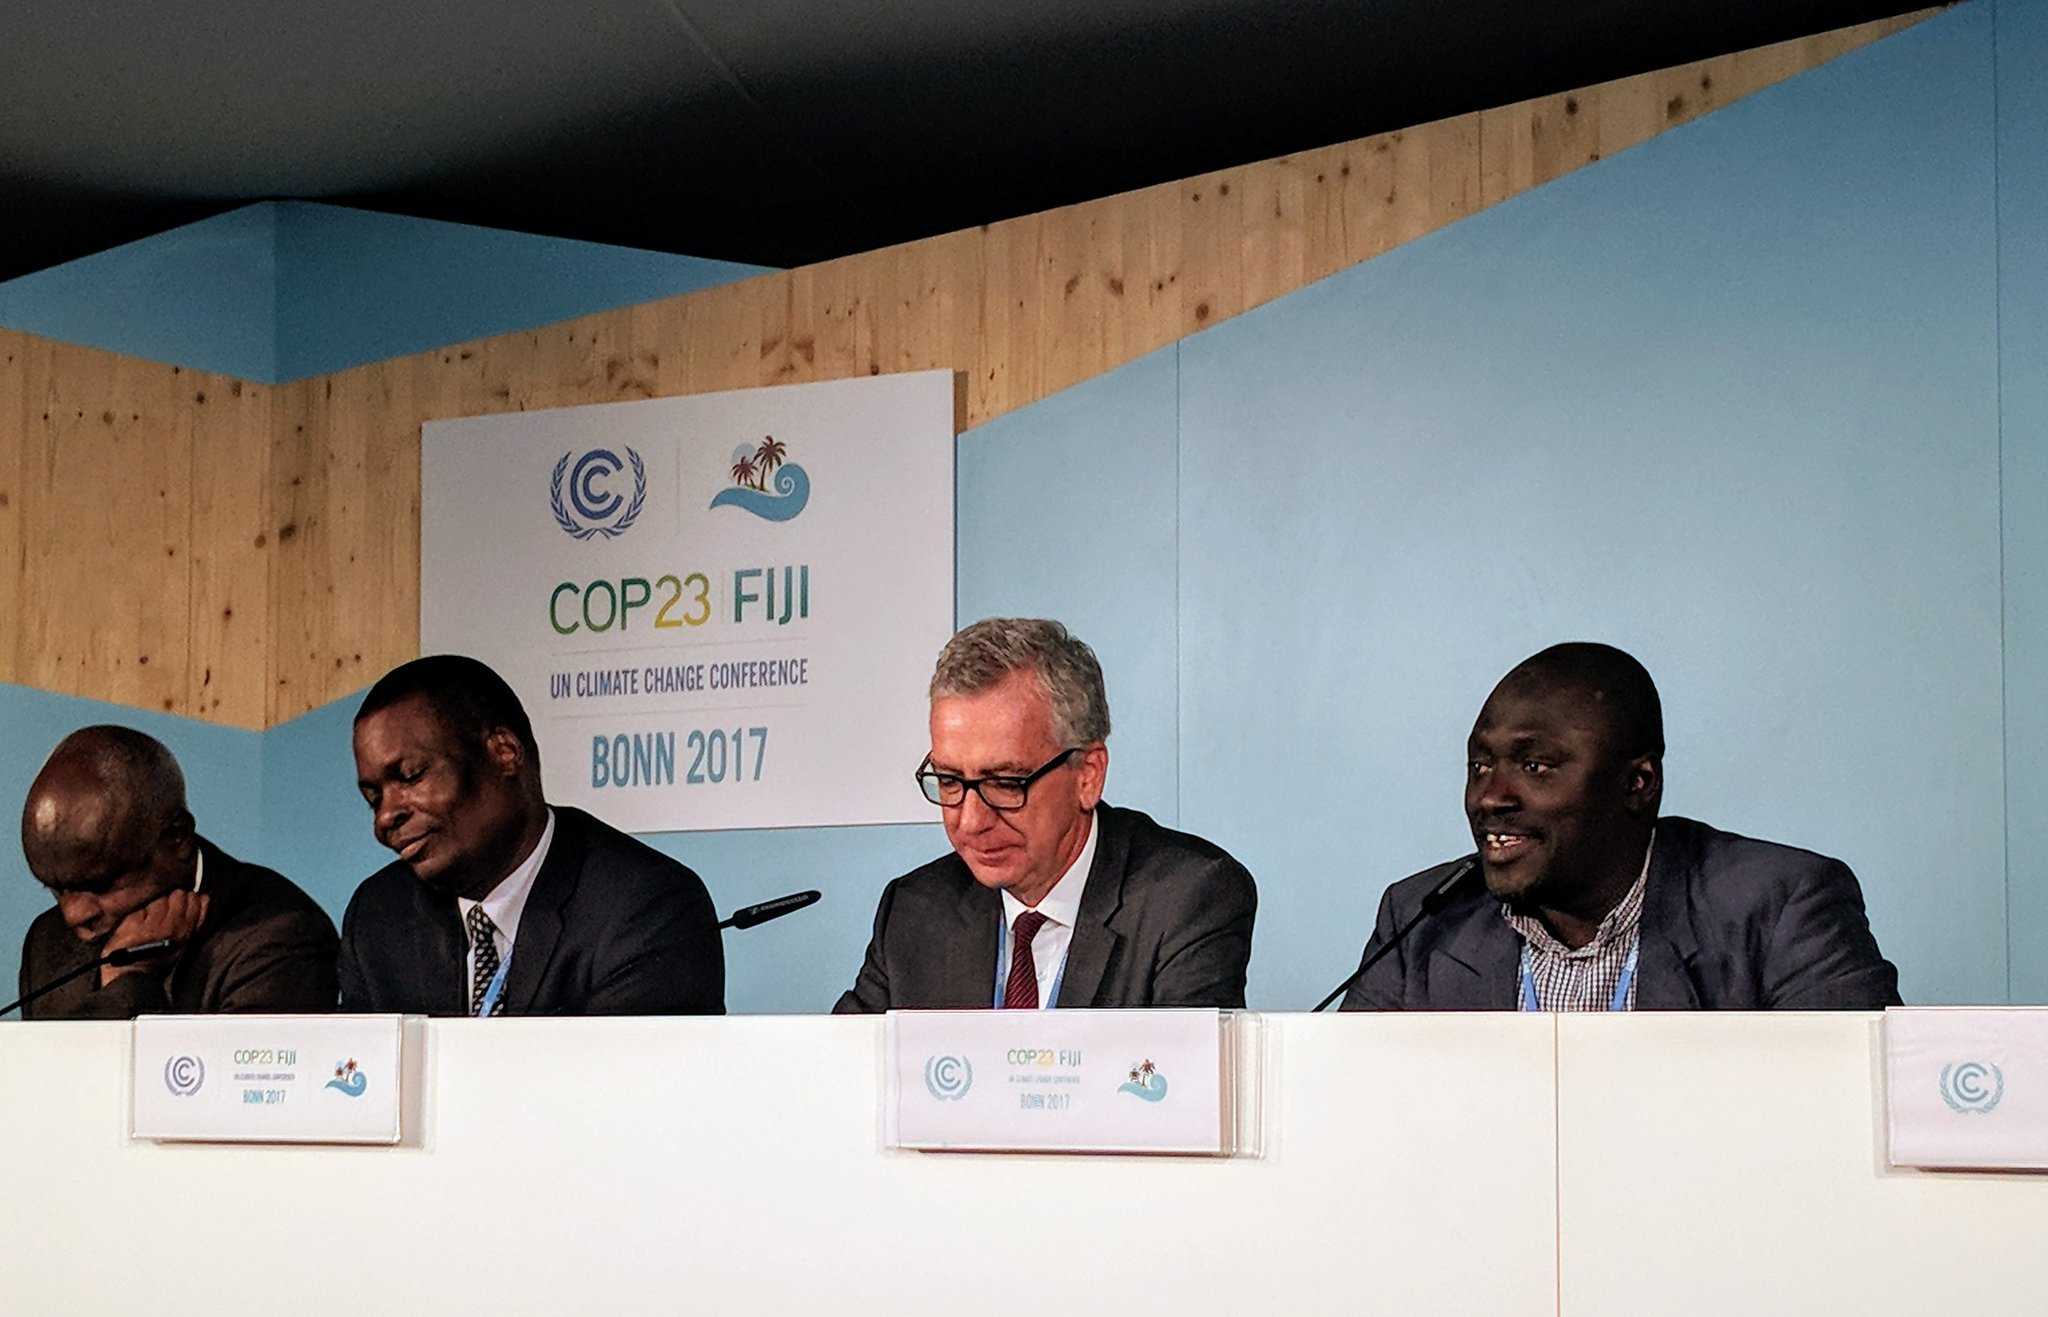 Now hearing from @F_Pigliaru from Sardinia. He reminds us that it's an island in the middle of the Med, and is a bridge between the shores of the sea. #COP23 https://t.co/D7M4RLEuGC